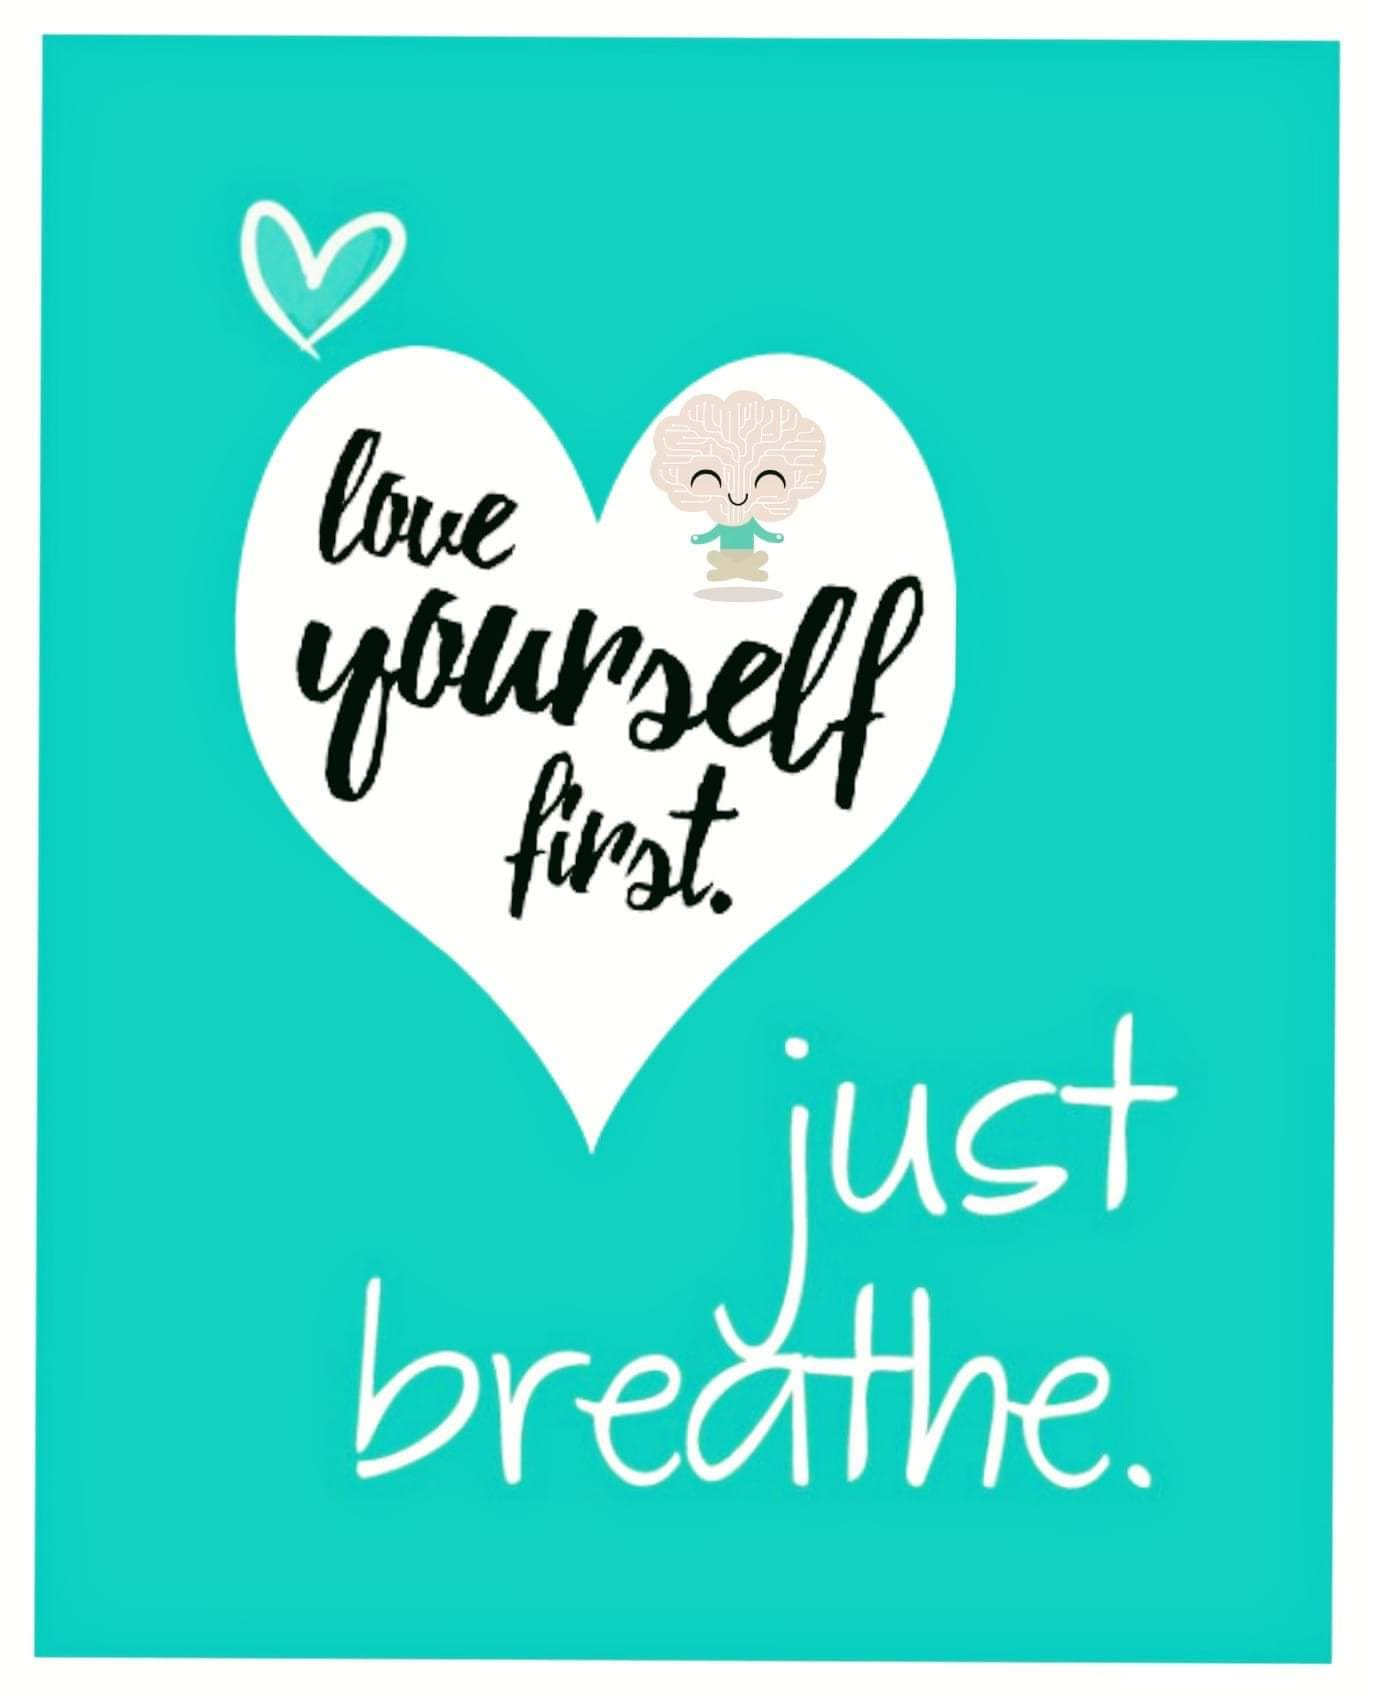 I focus on breathing and grounding myself